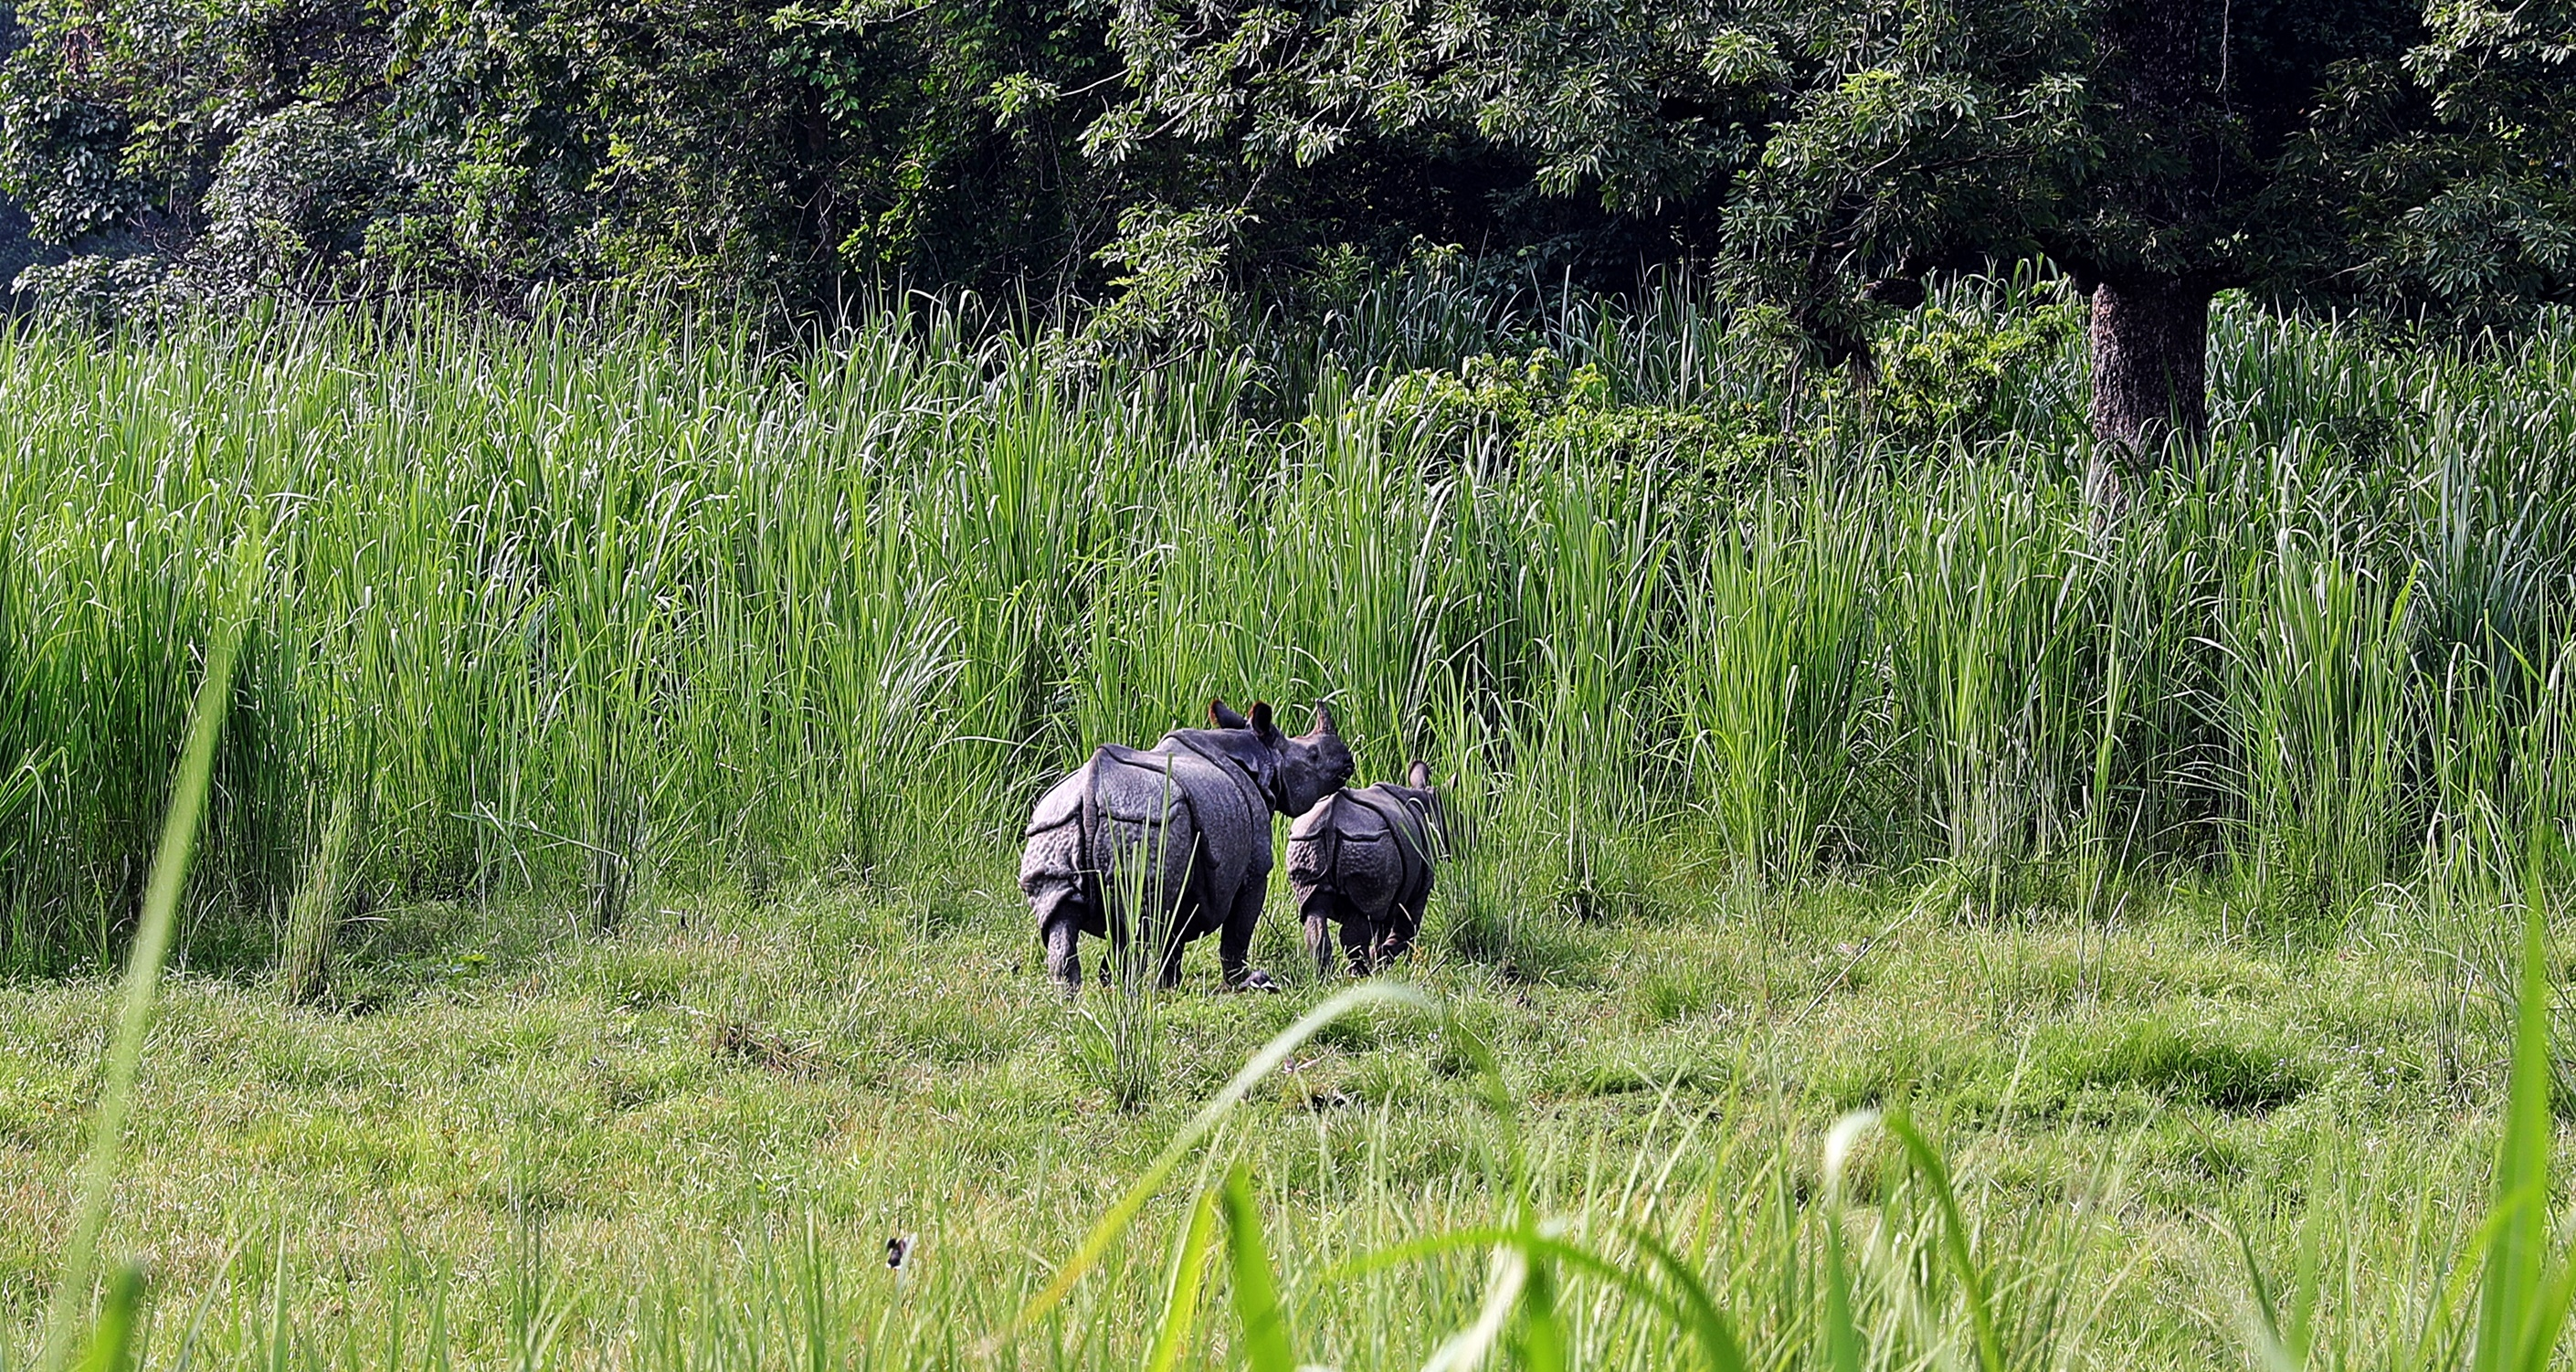 One-horned rhino mother and baby with armour-like skin